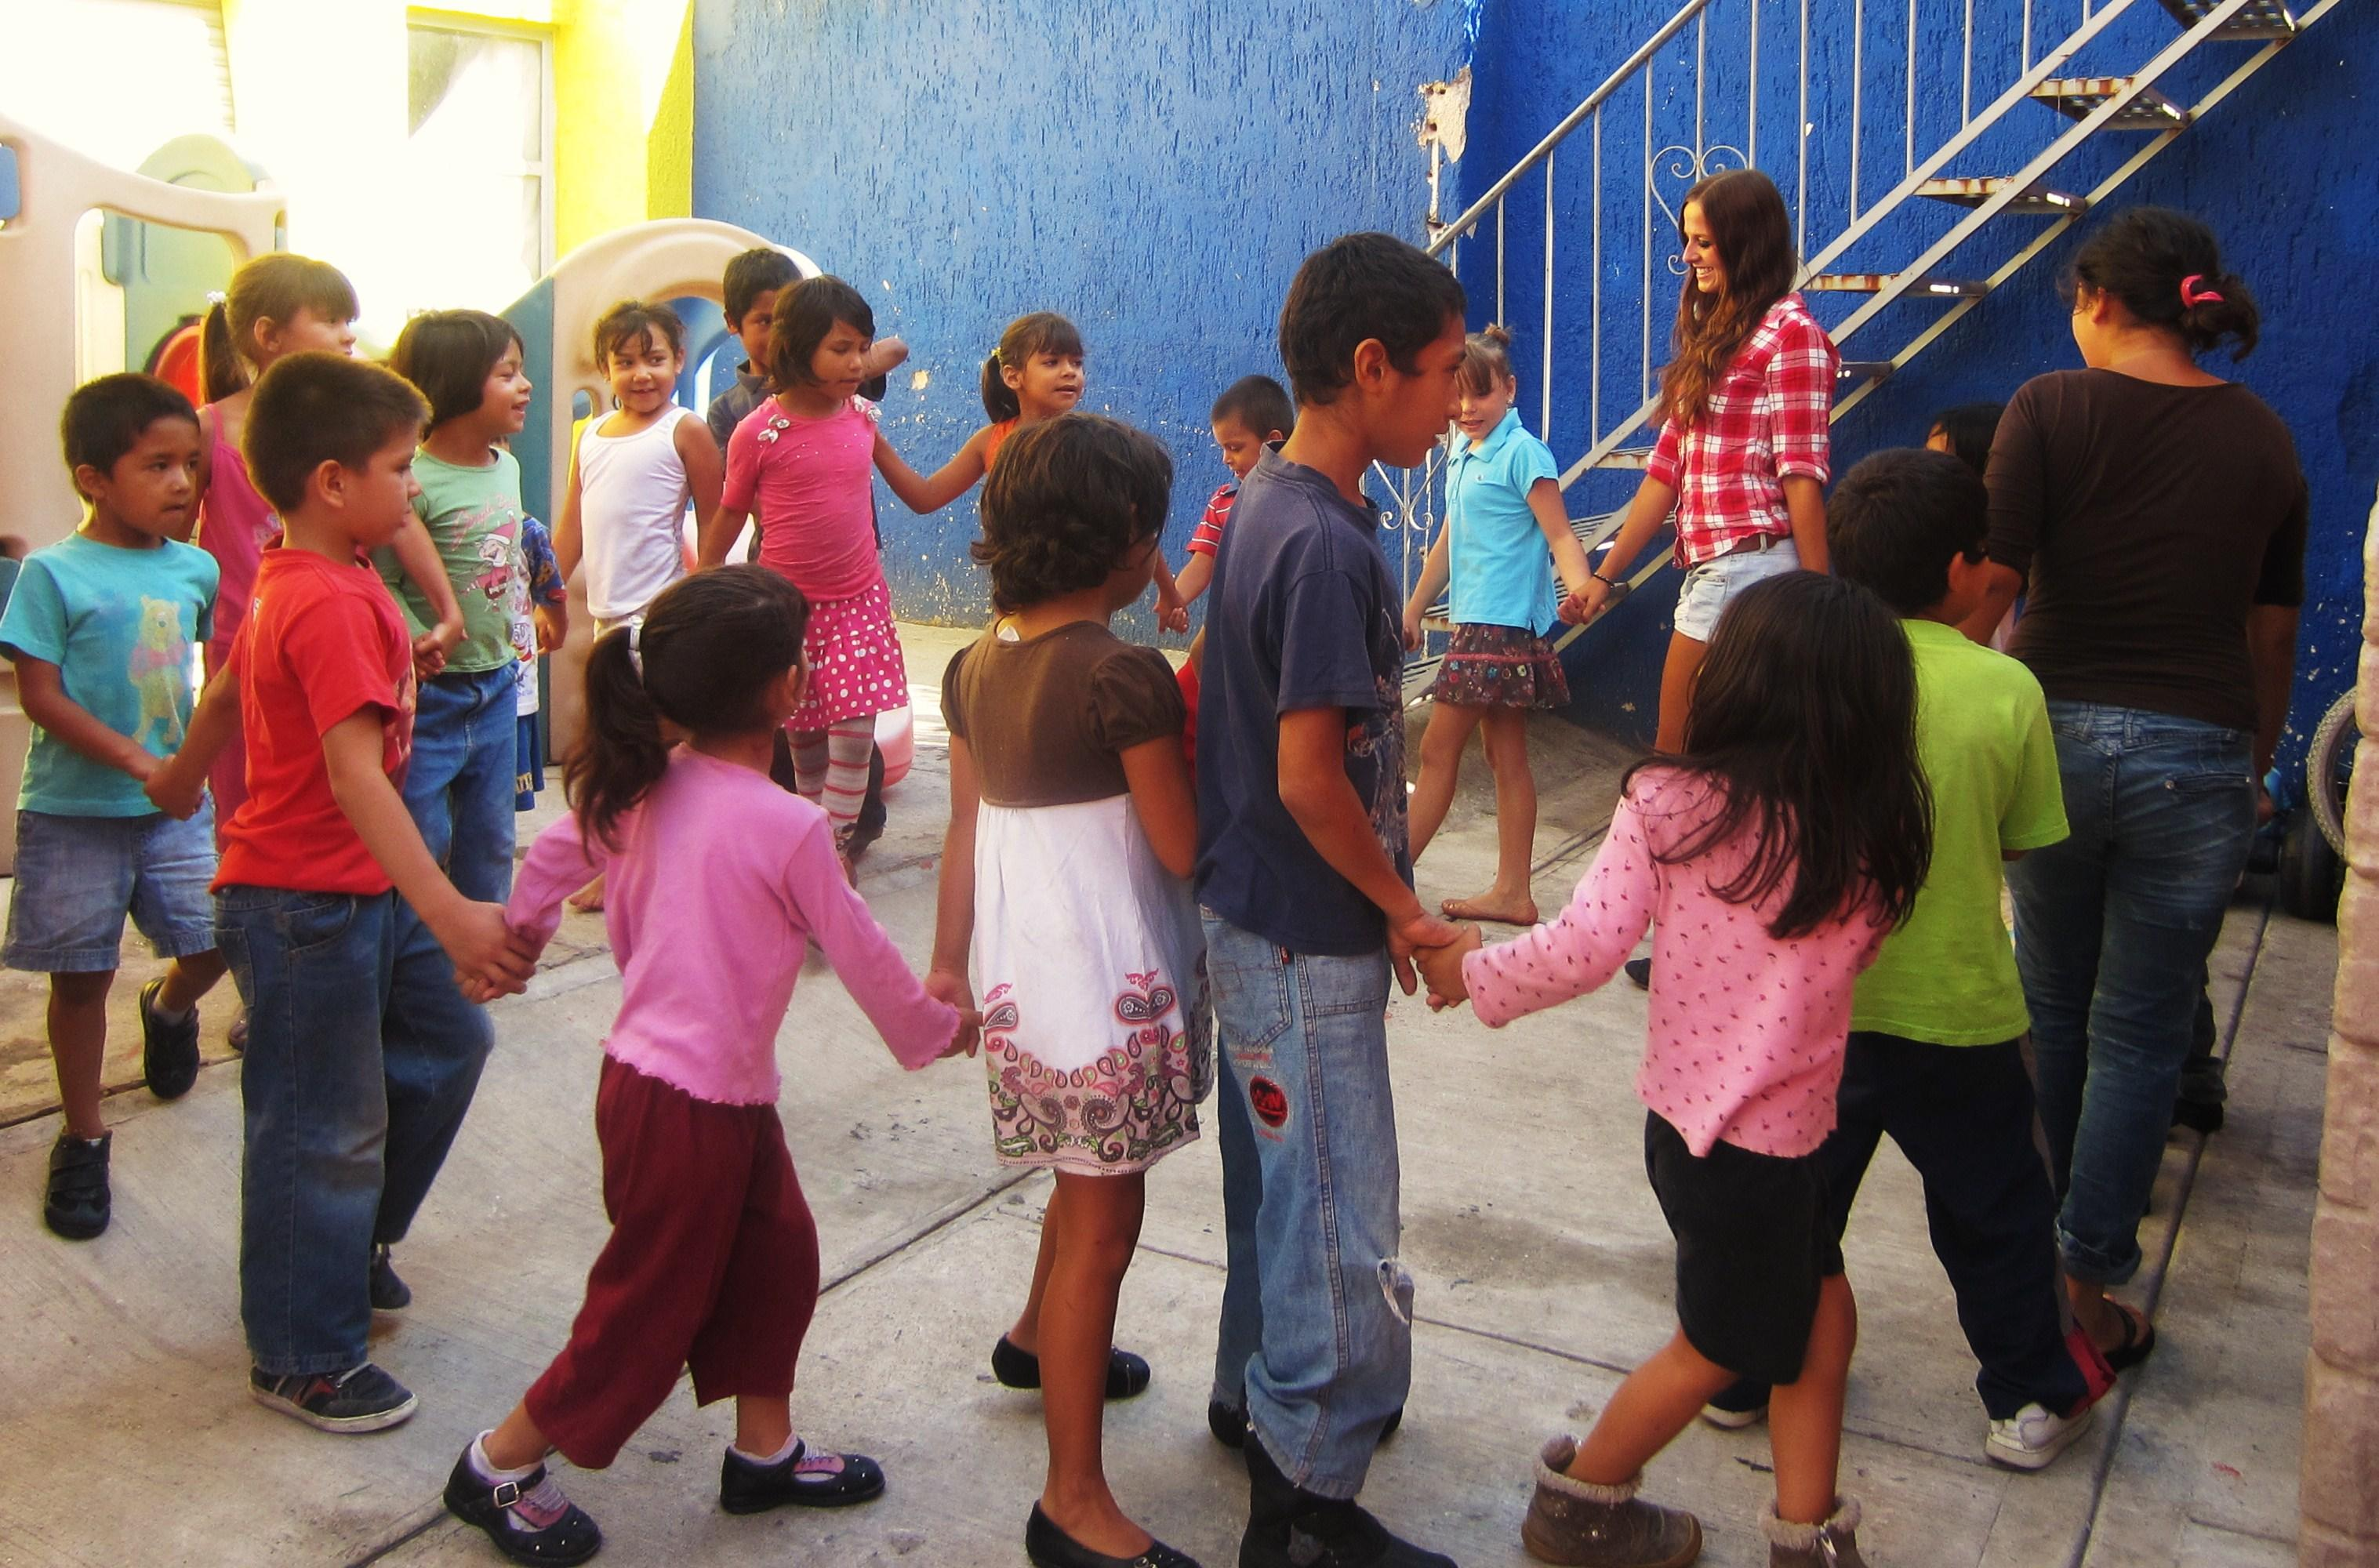 A group of Projects Abroad volunteers working with children in Mexico hold children's hands during an activity at a care centre.